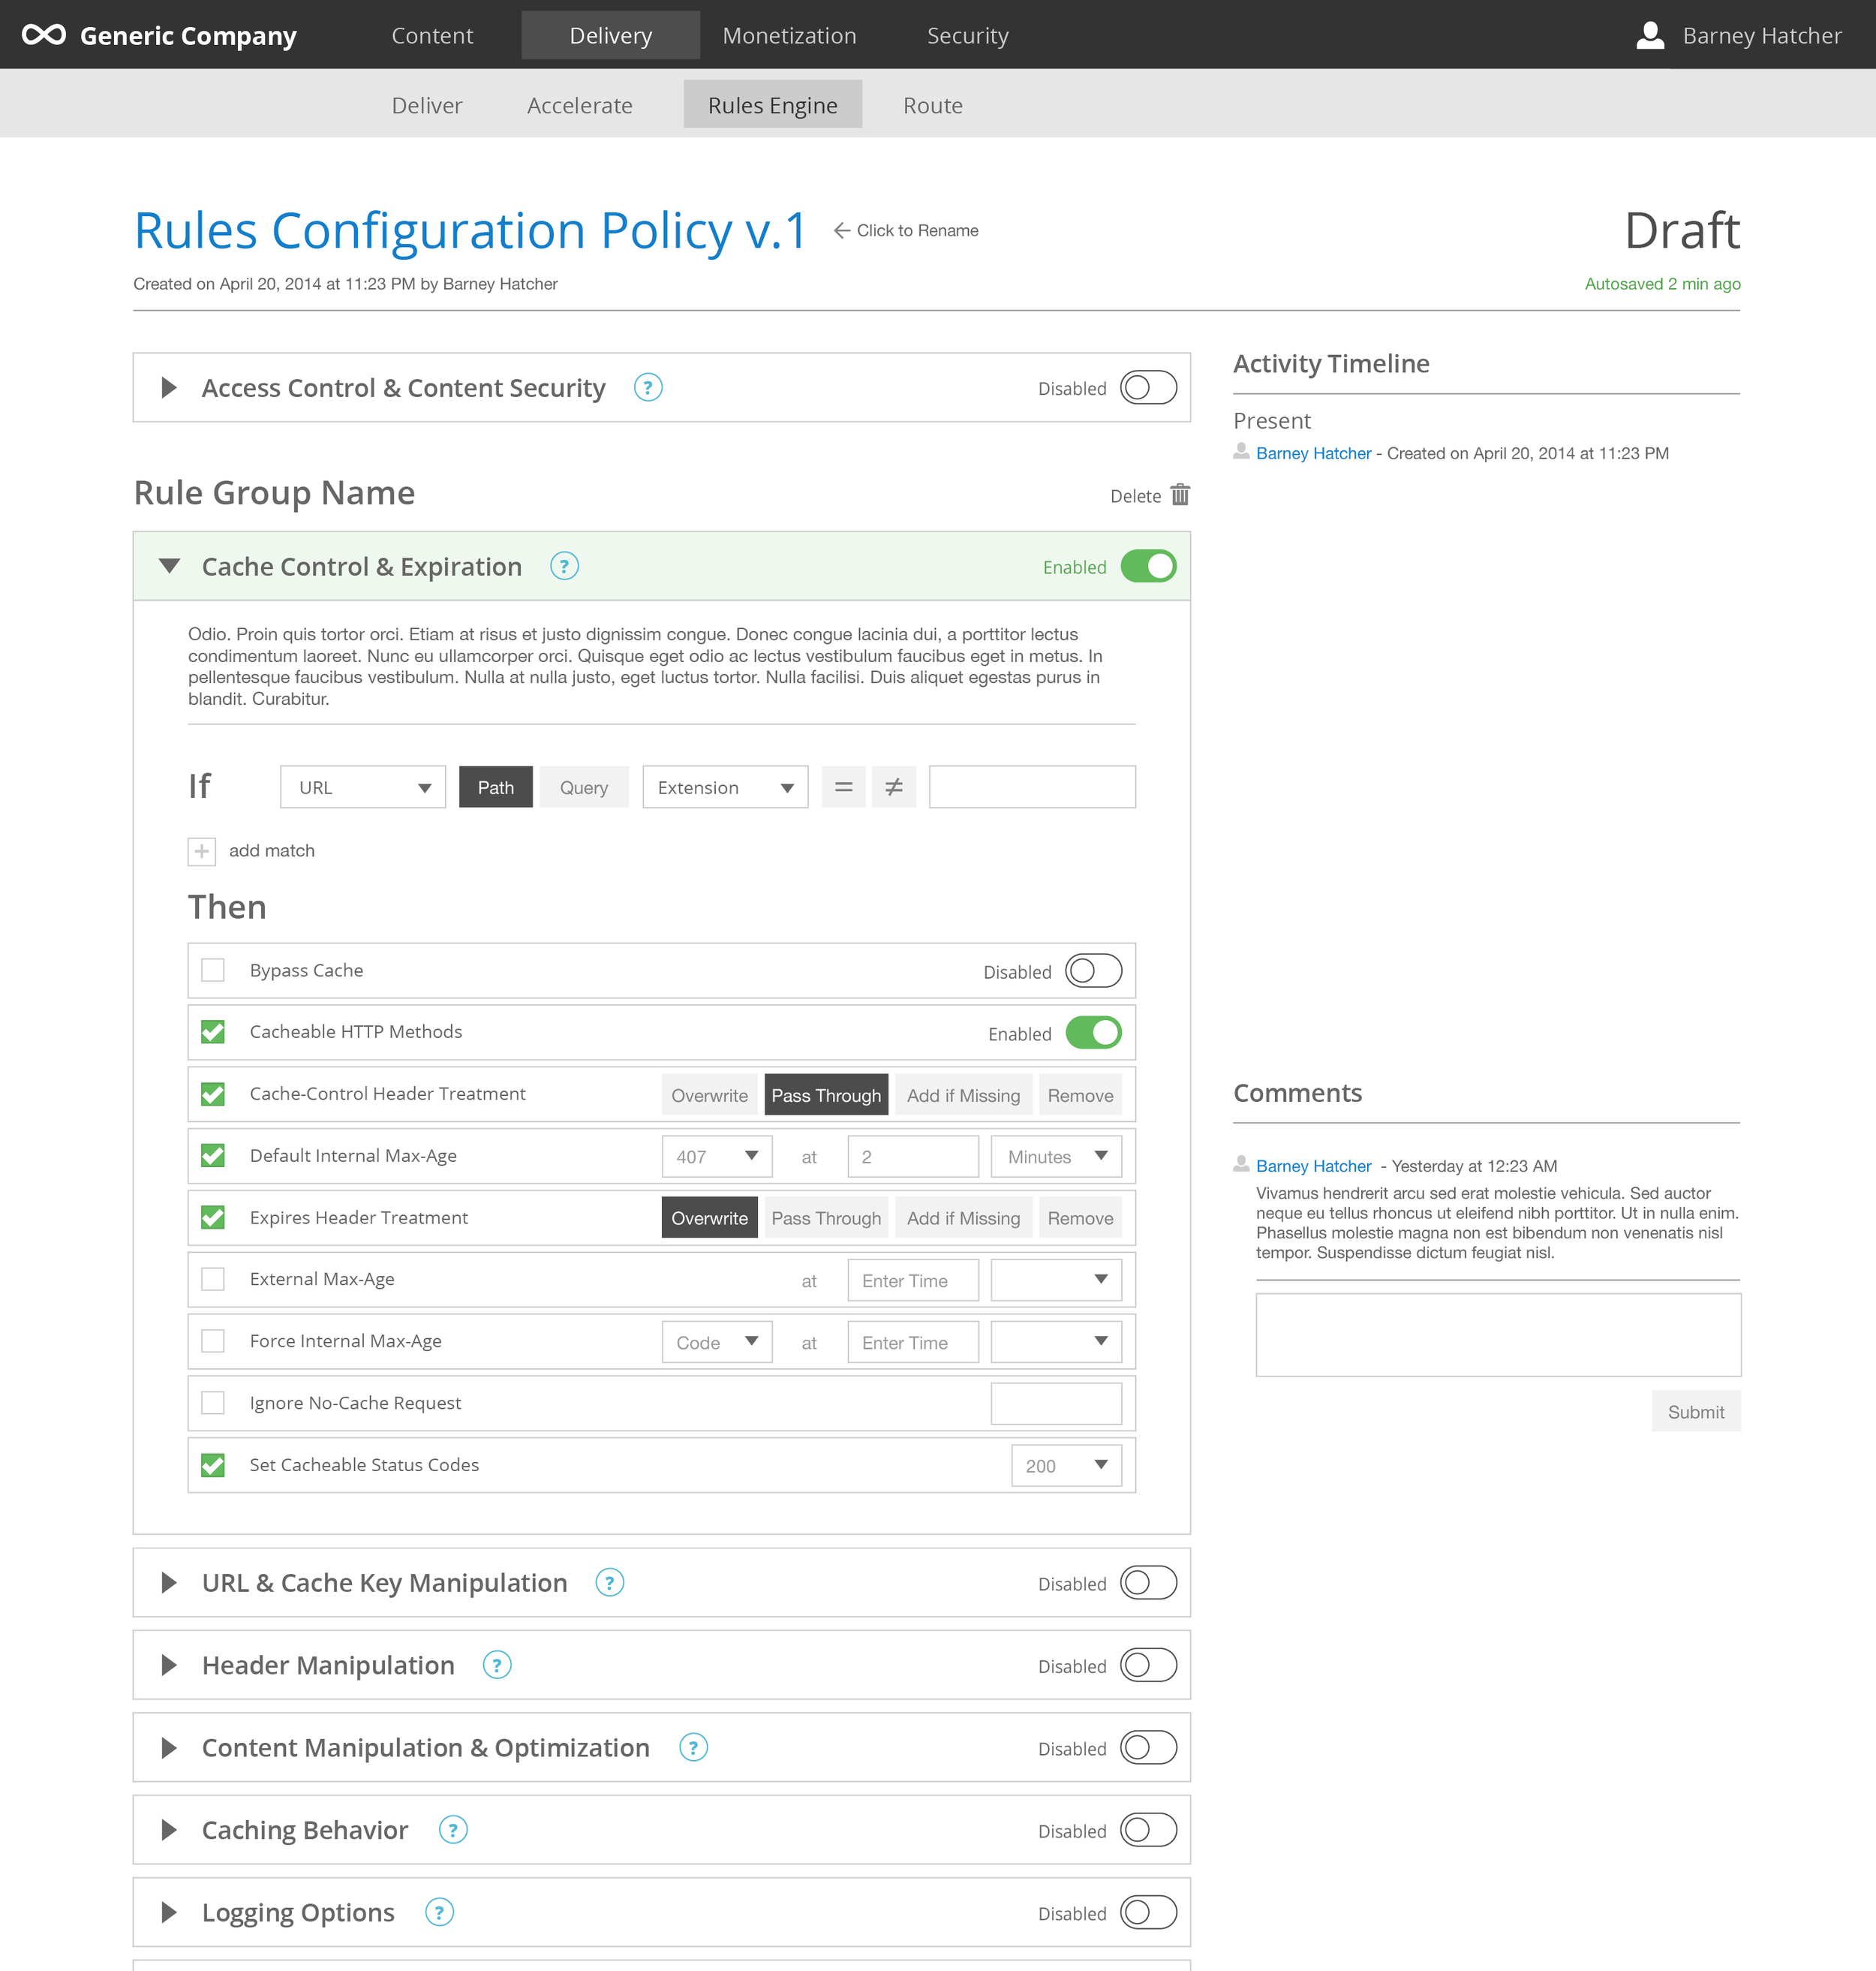 ux-rules-engine-v1_configuration policy-draft-1 enabled-features populated-match-url-extension-new group.png